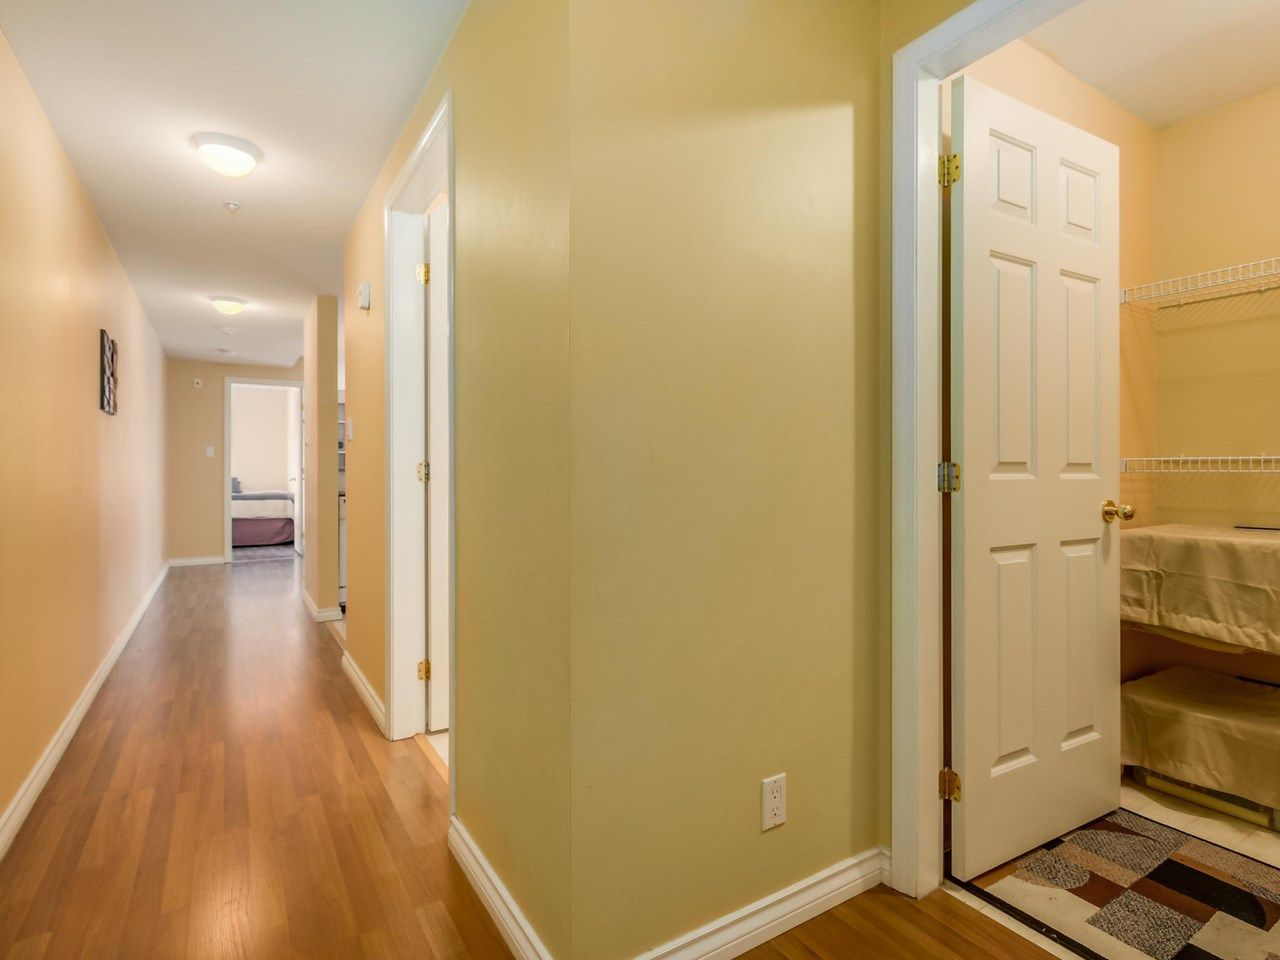 """Photo 9: Photos: 304 137 W 17 Street in North Vancouver: Central Lonsdale Condo for sale in """"Westgate"""" : MLS®# R2075830"""